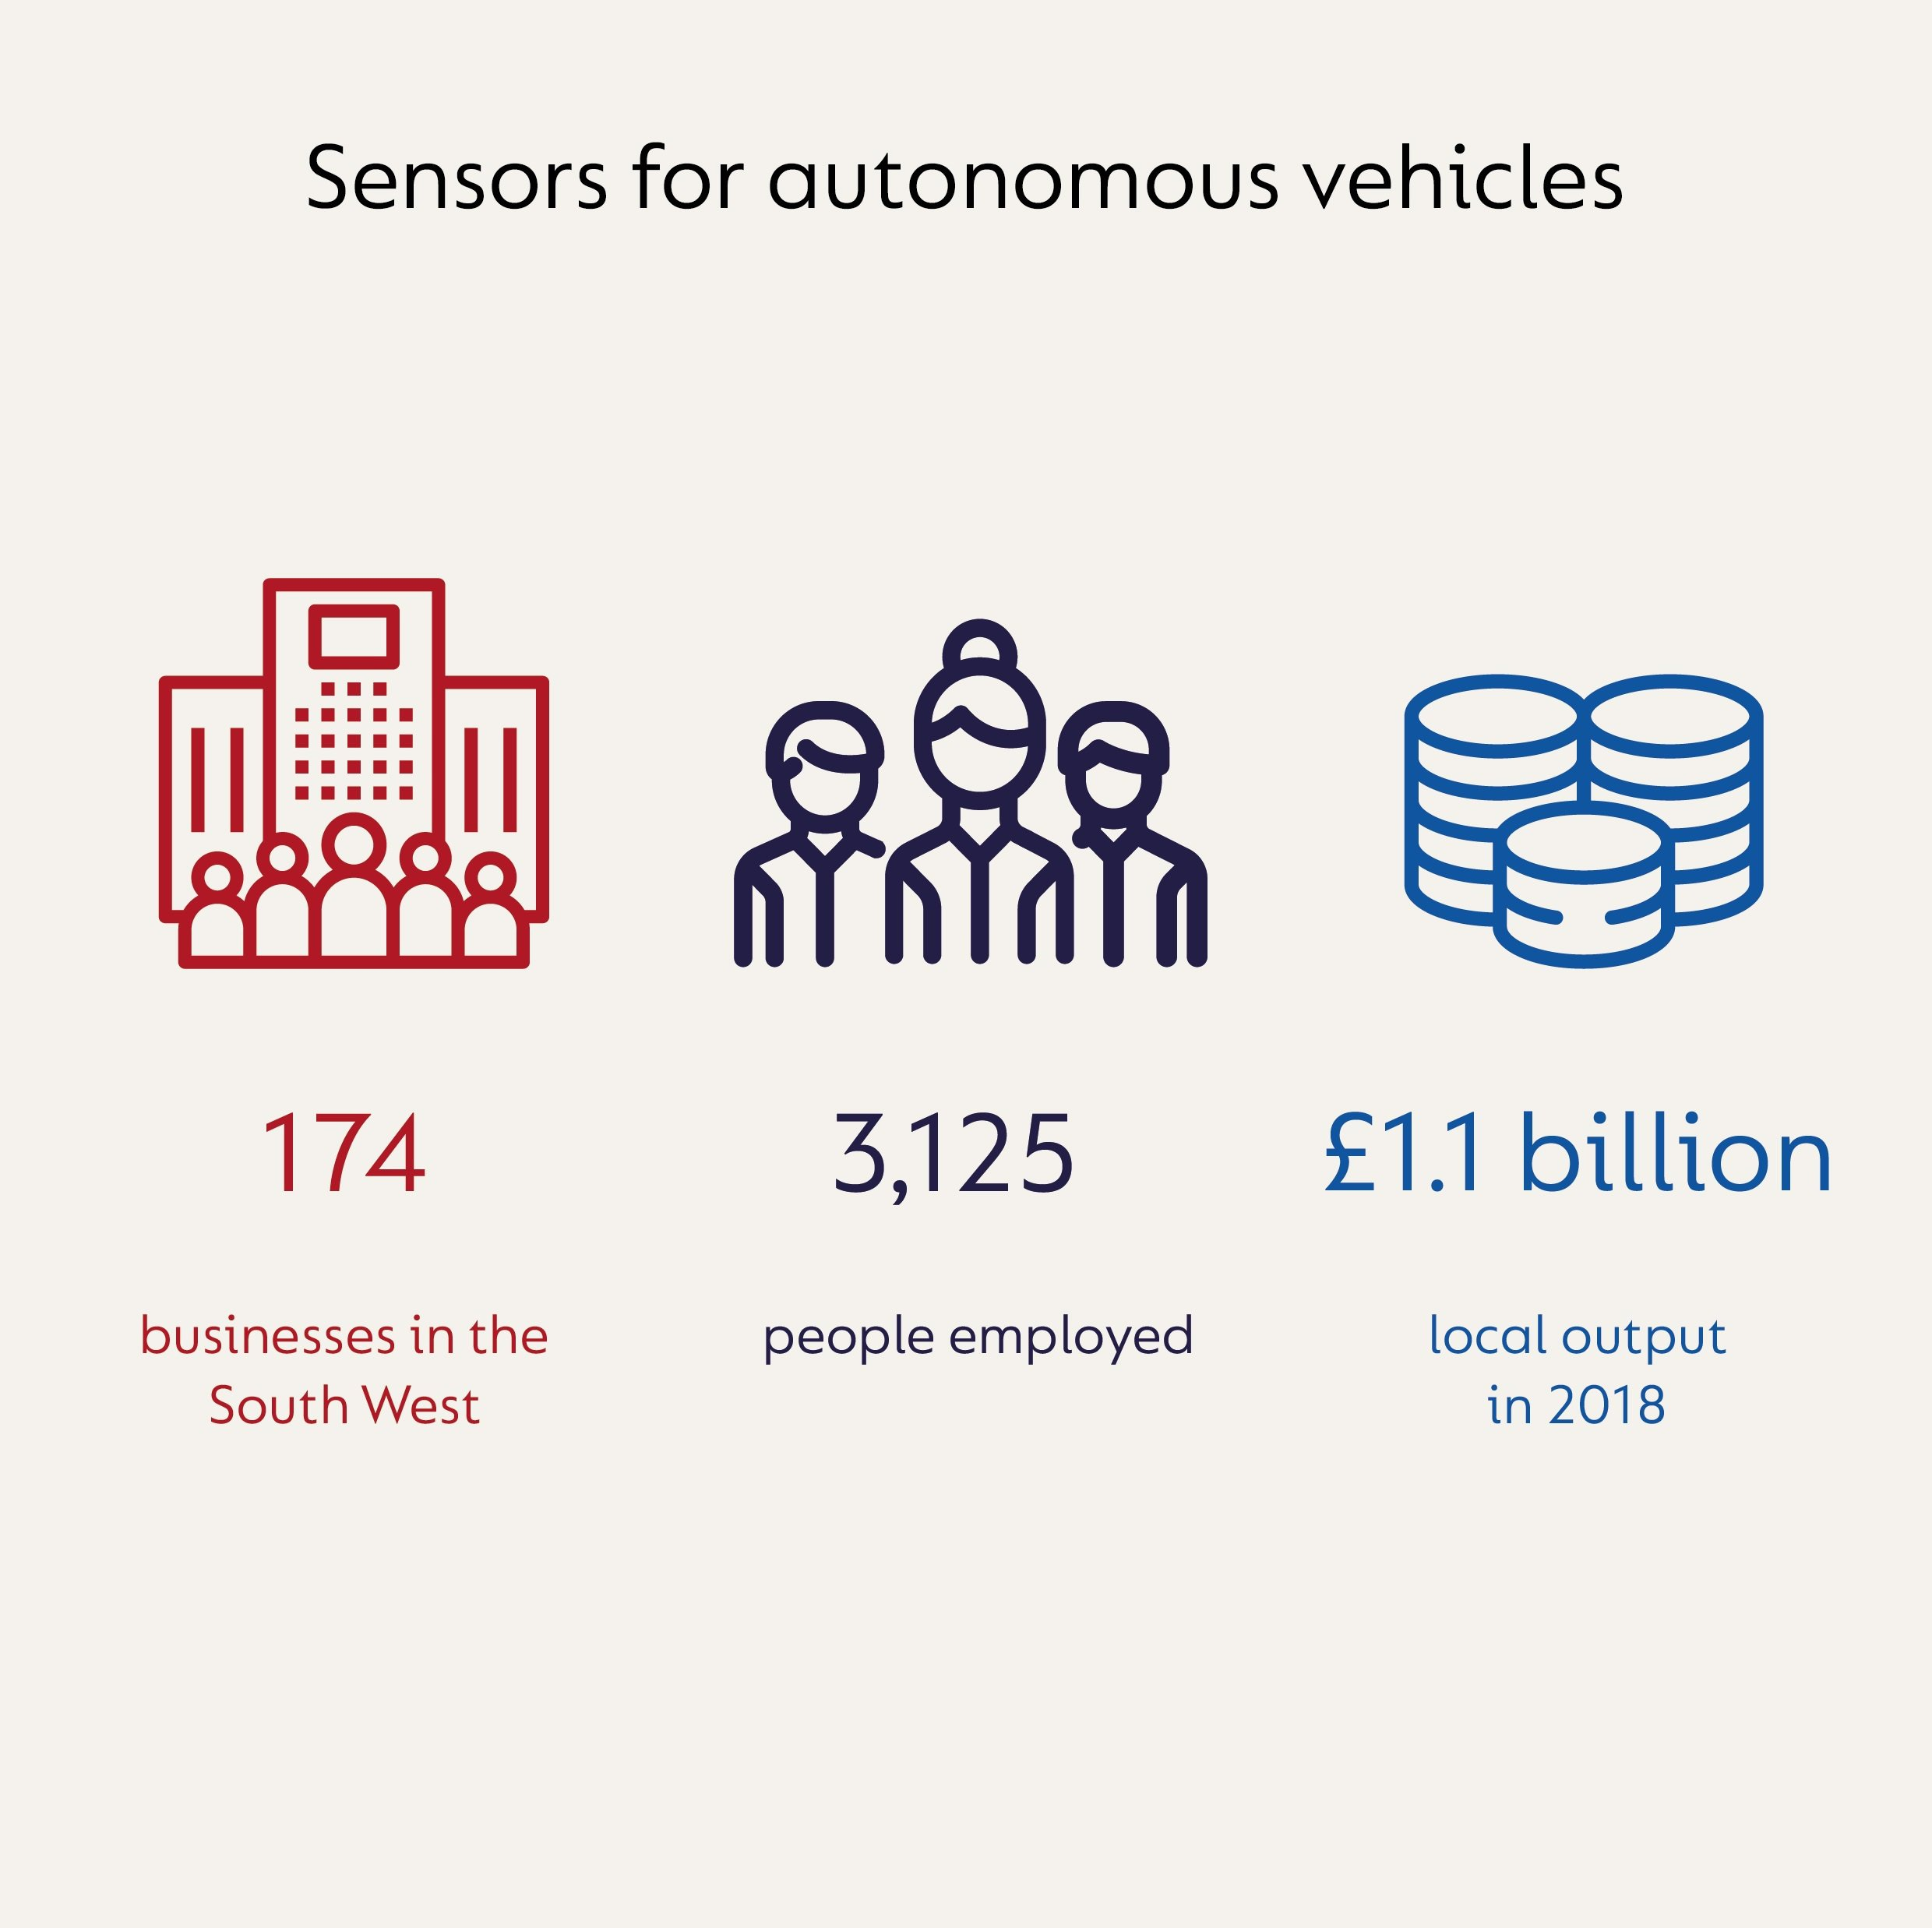 Infographic showing that in the sensors for the autonomous vehicles sector in the South West of the UK, there are 174 businesses, 3,125 people employed and local output was £1.1 billion in 2018.